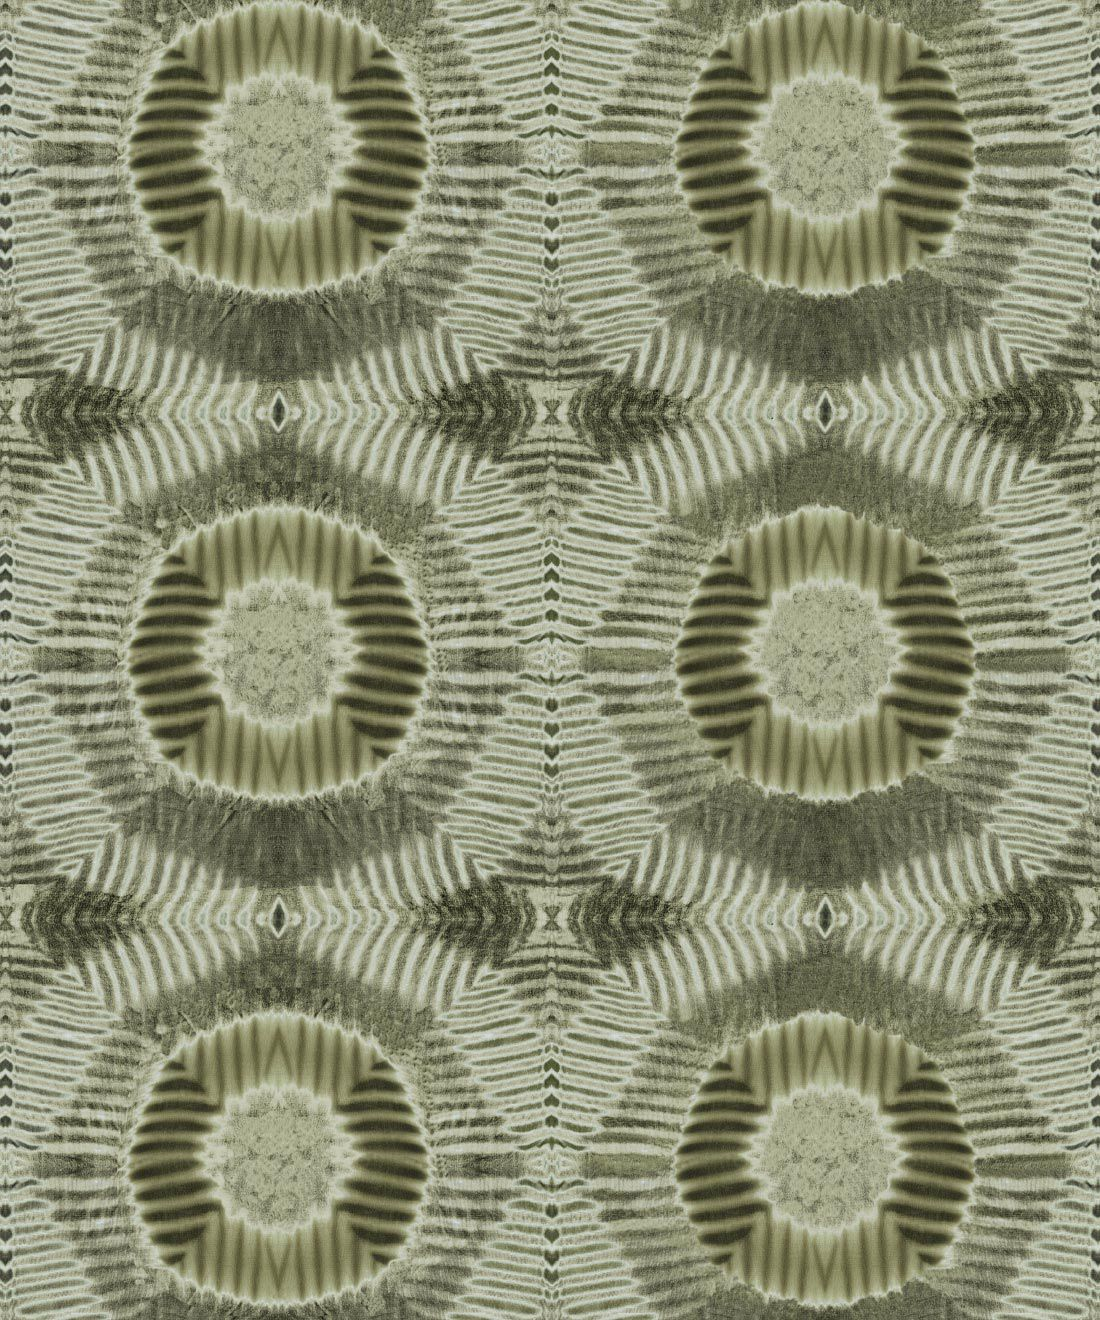 Aztec Suns Wallpaper Olive • Shibori Geometric • Swatch